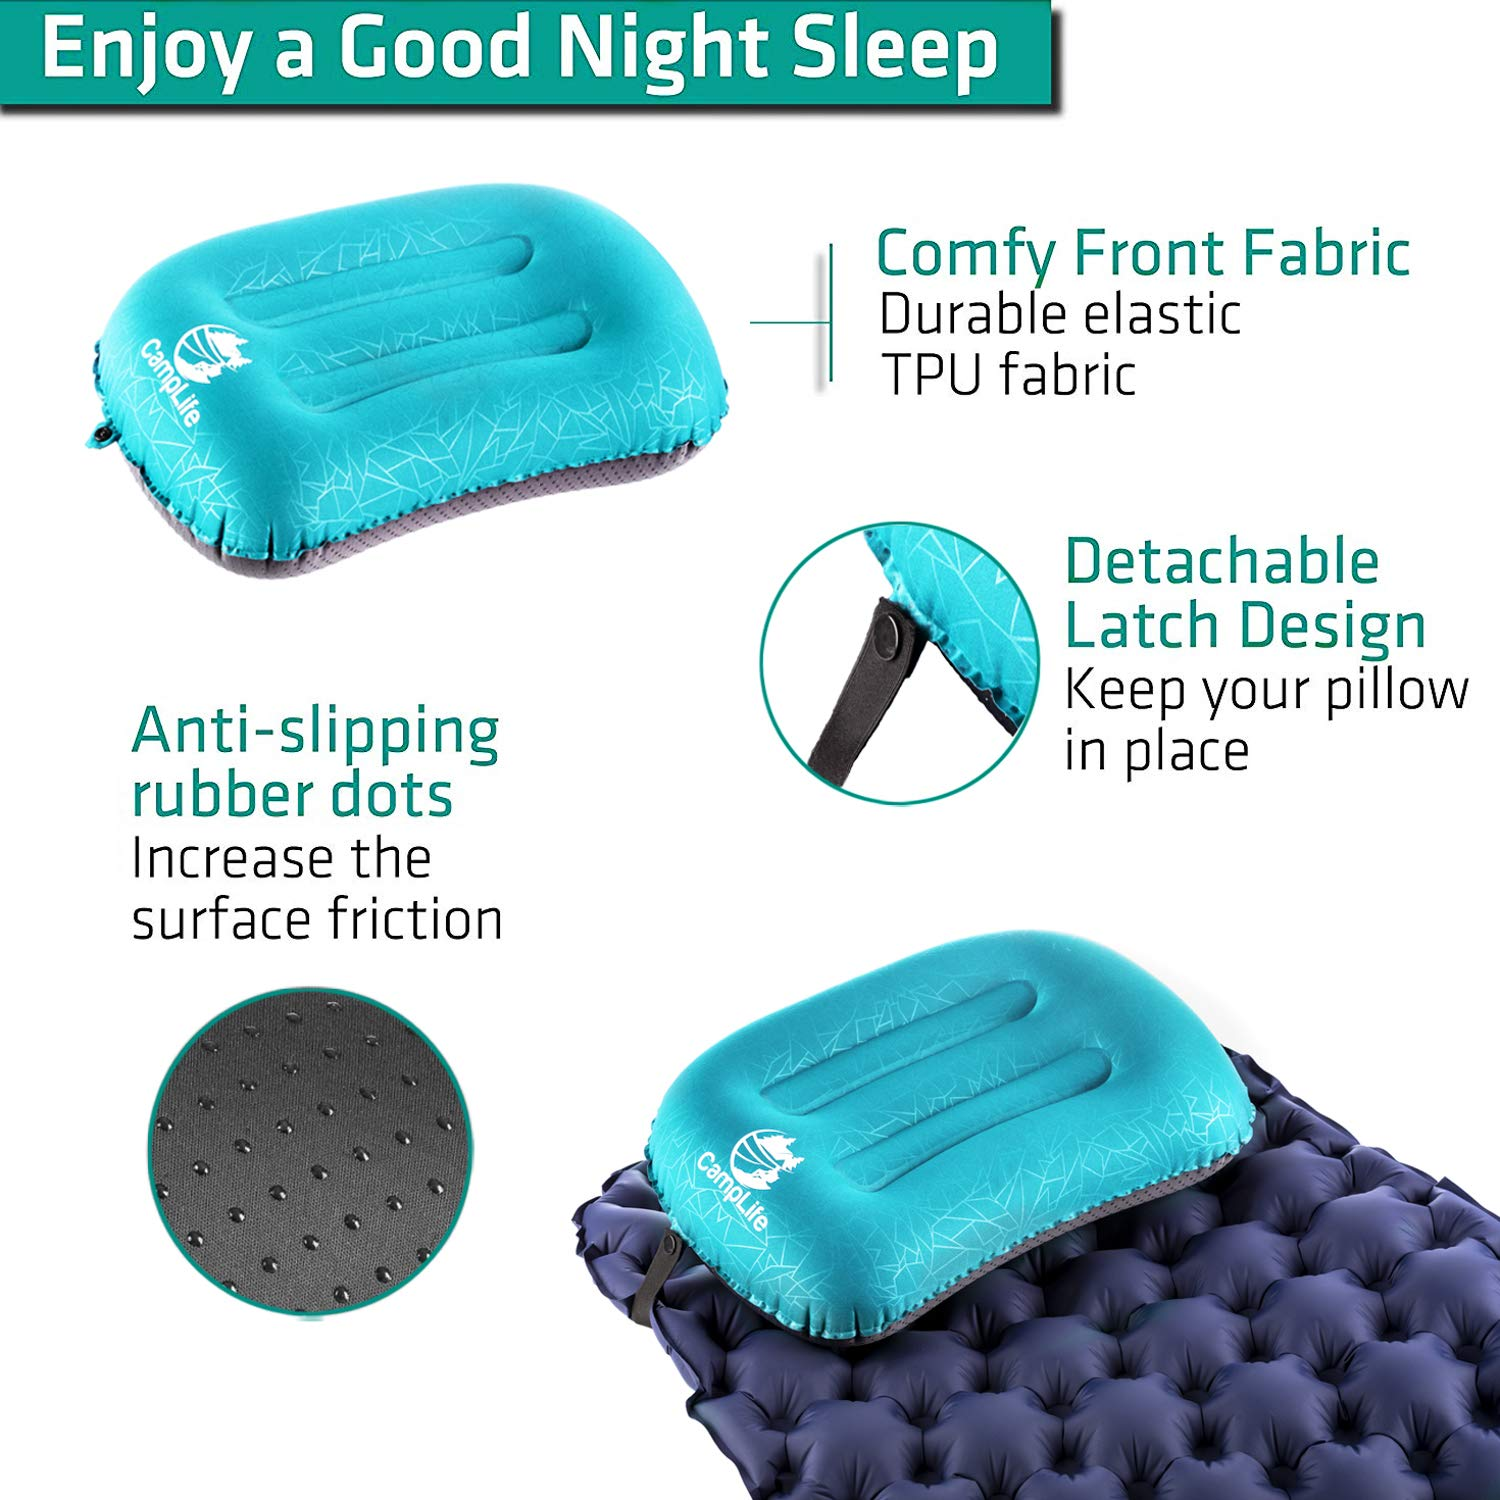 Ultralight Inflatable Camping Travel Pillow Backpacking ALUFT 2.0 Compressible Comfortable Ergonomic Inflating Pillows for Neck /& Lumbar Support While Camp Compact Hiking Blue